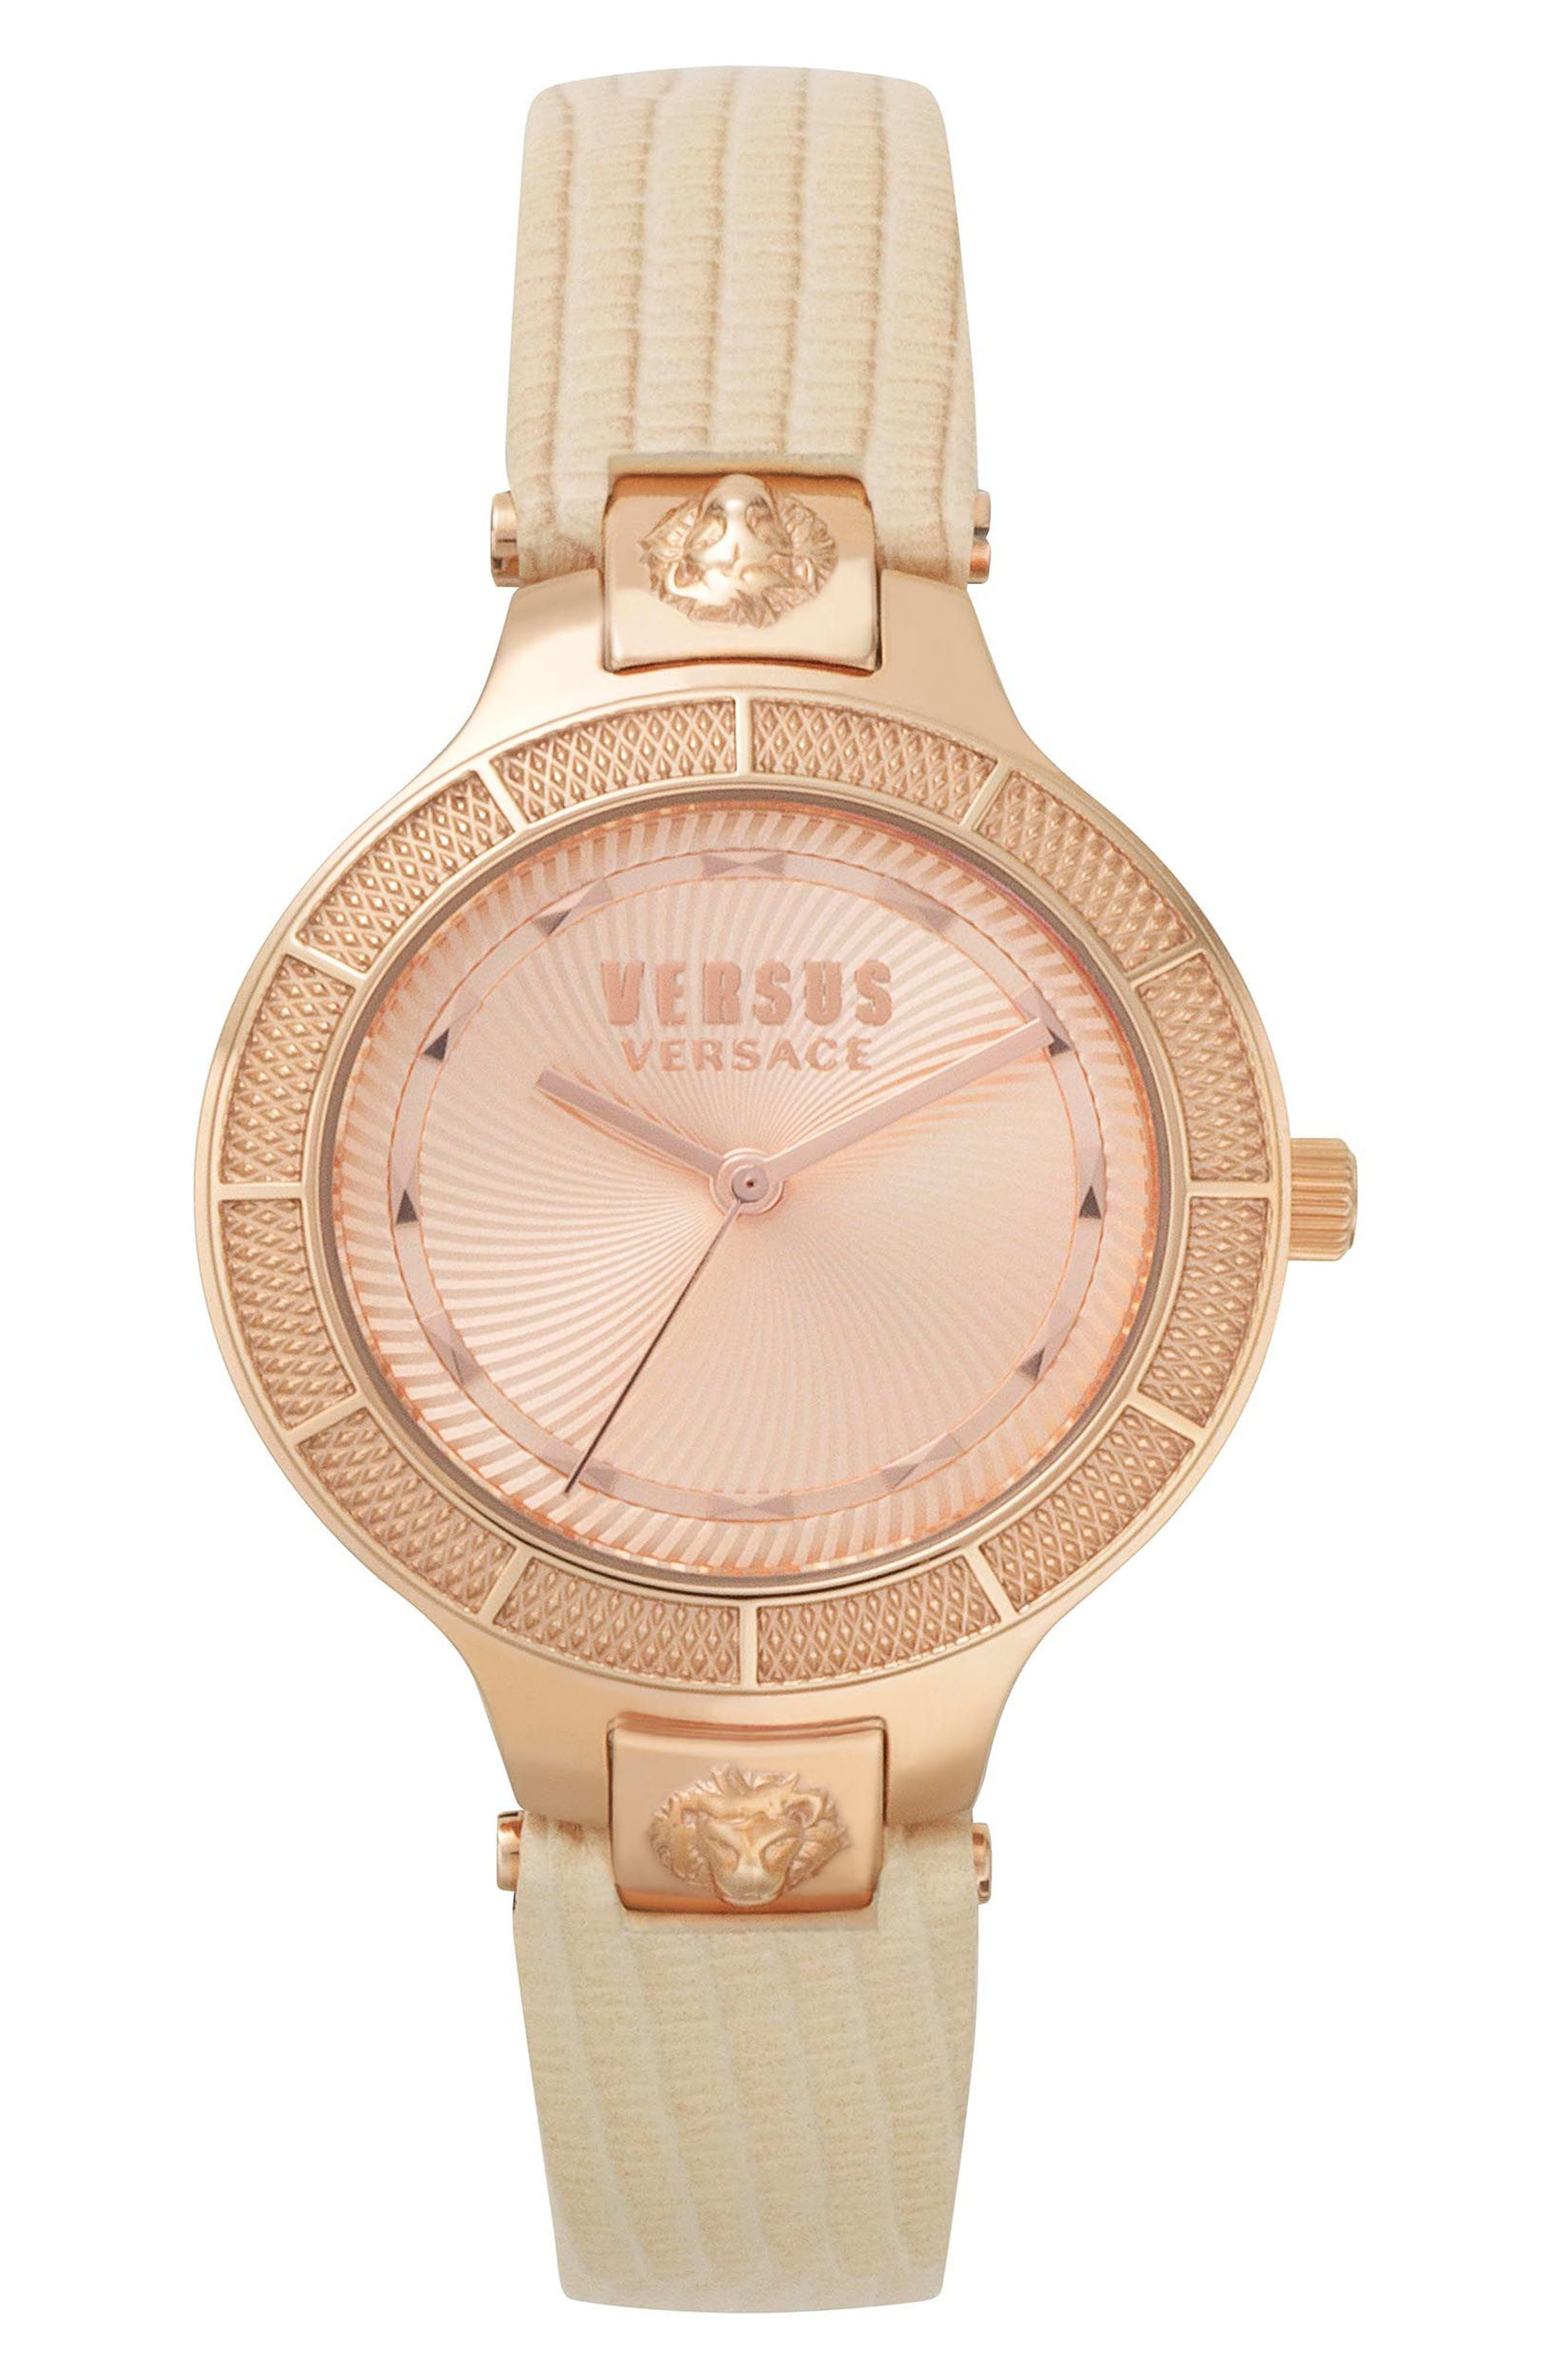 VERSUS VERSACE Claremont Leather Strap Watch, 32mm, Main, color, PINK/ ROSE GOLD